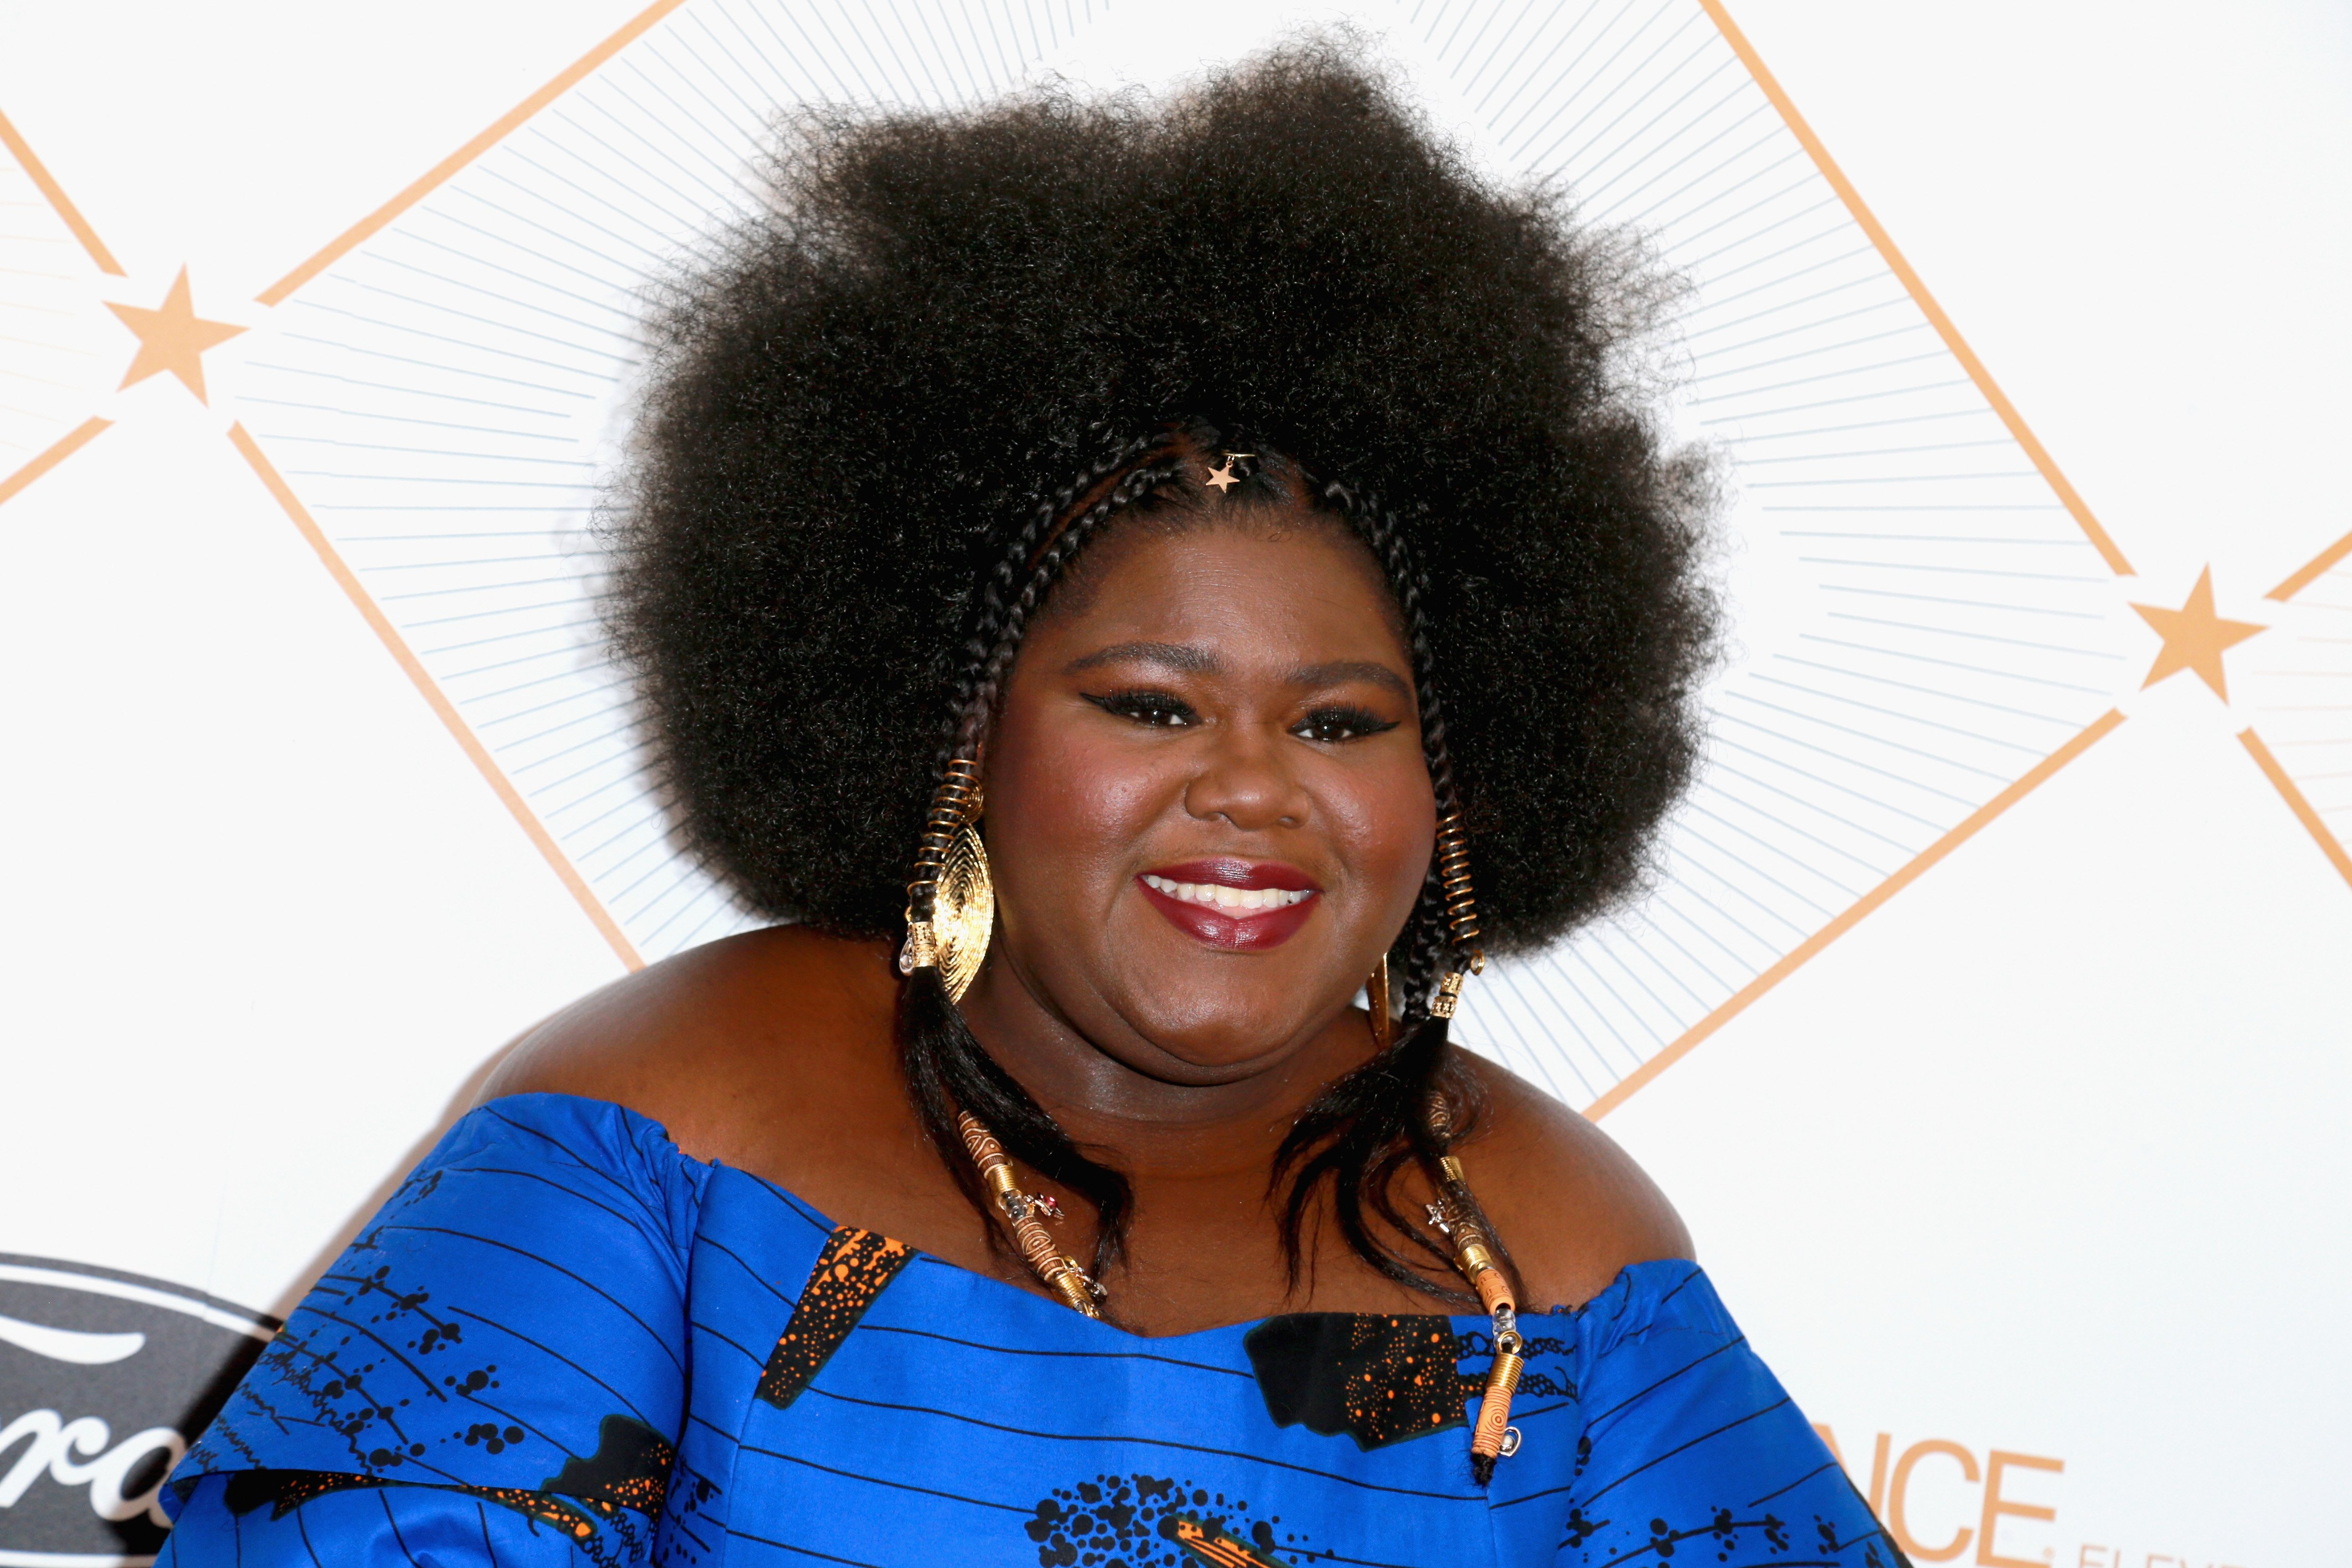 Gabourey Sidibe poses at the 2018 Essence Black Women In Hollywood Oscars Luncheon on March 1, 2018. | Photo: Getty Images